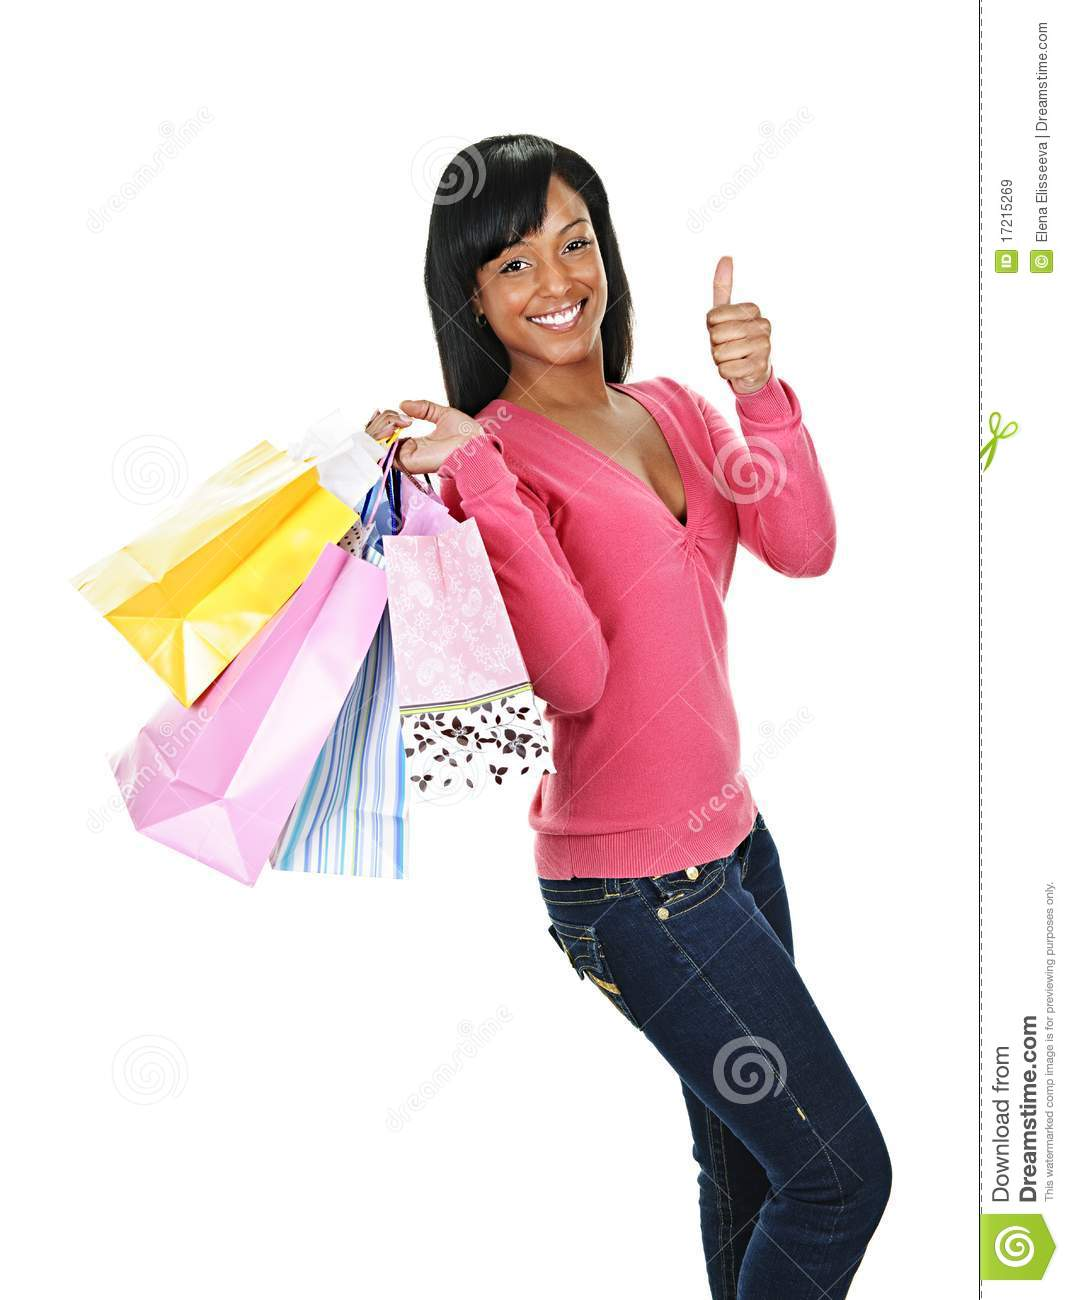 young-happy-black-woman-shopping-bags-17215269.jpg